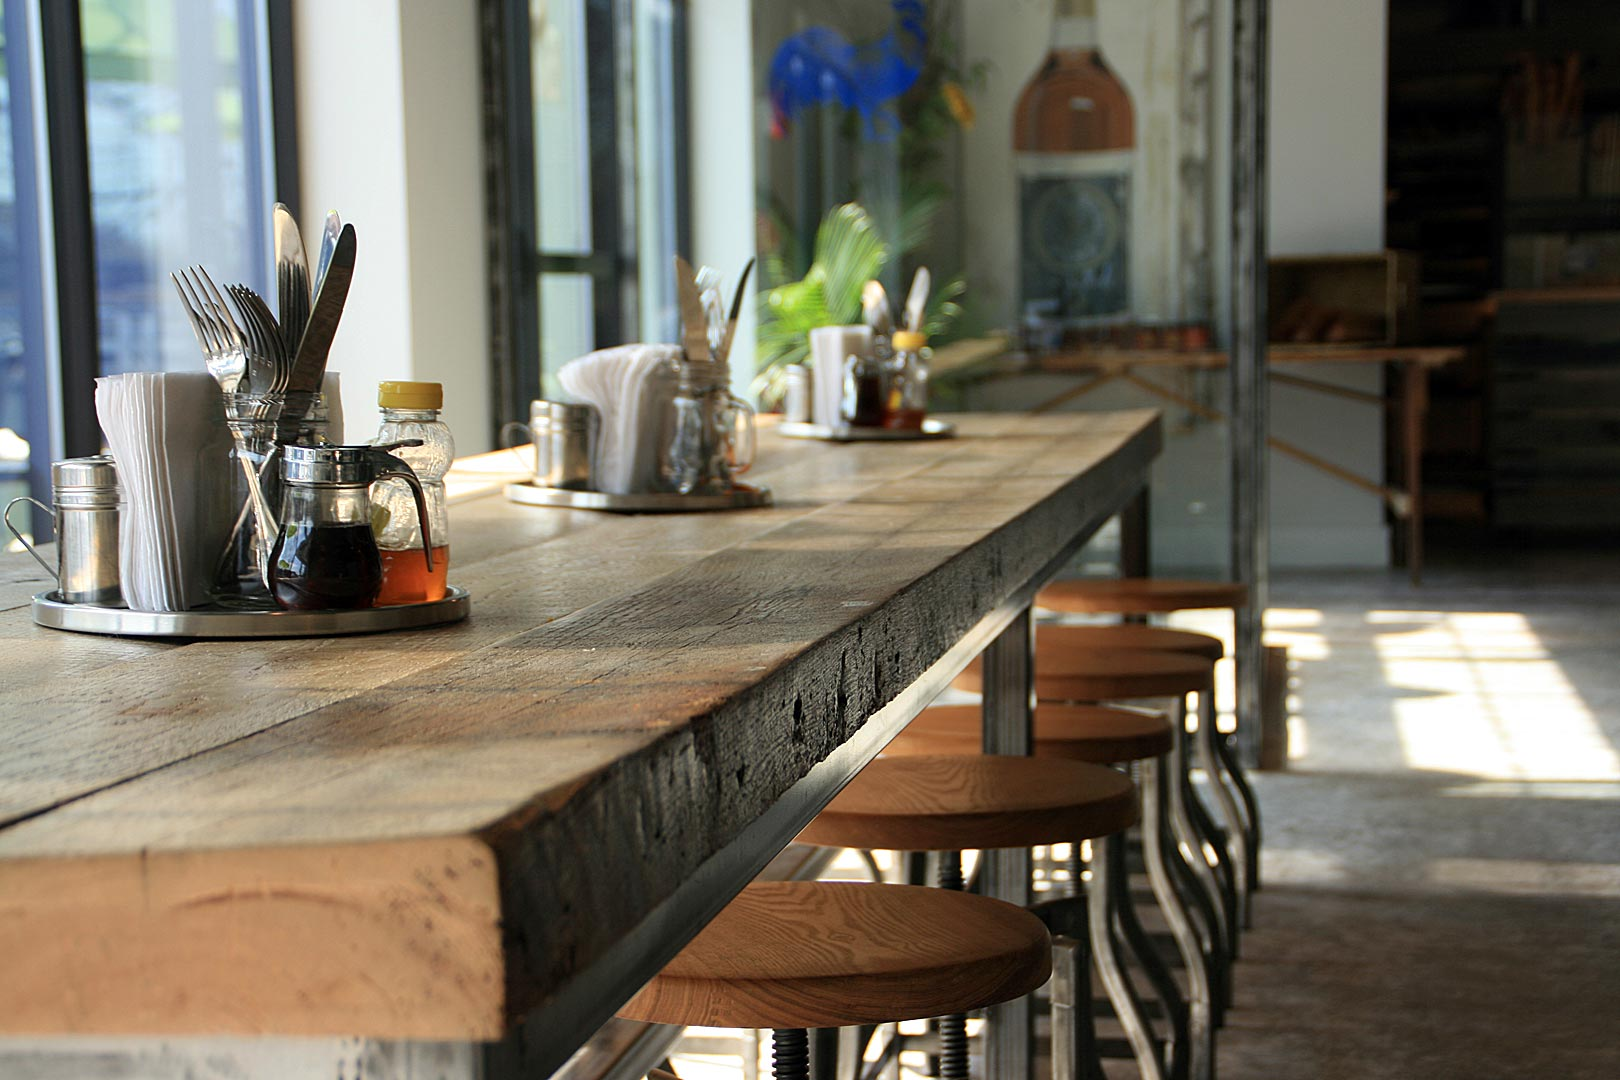 village-bakery-home-communal-table.jpg